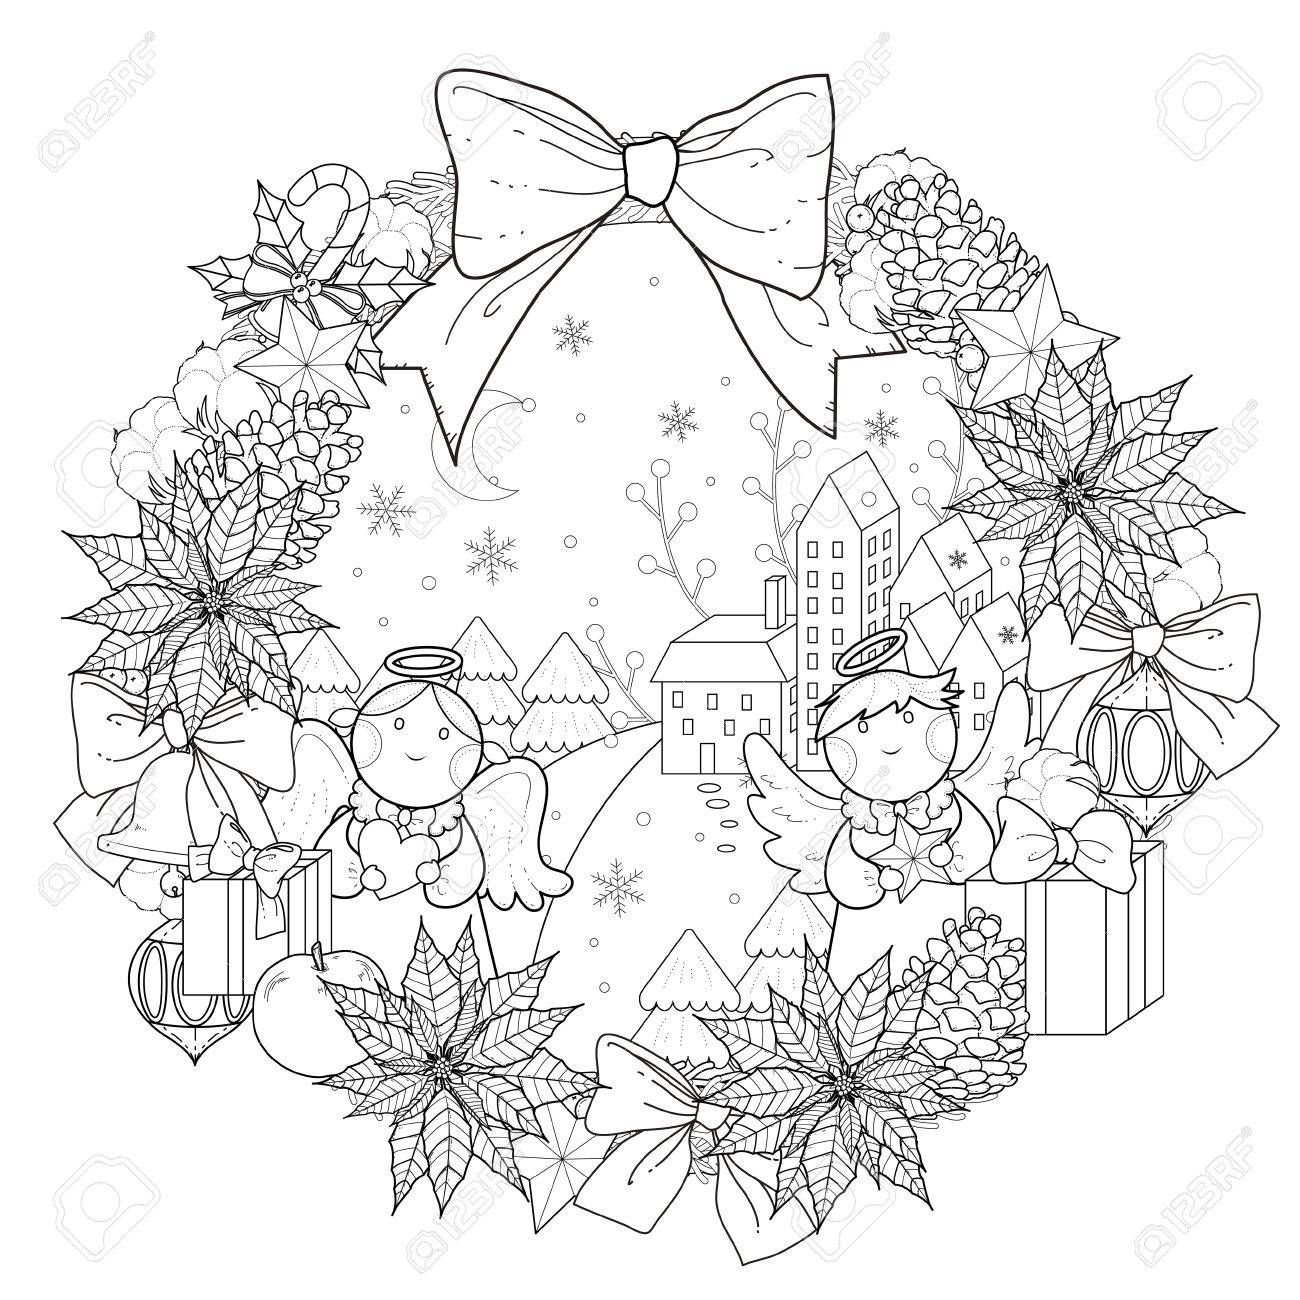 Christmas wreath coloring page with decorations in exquisite line ...